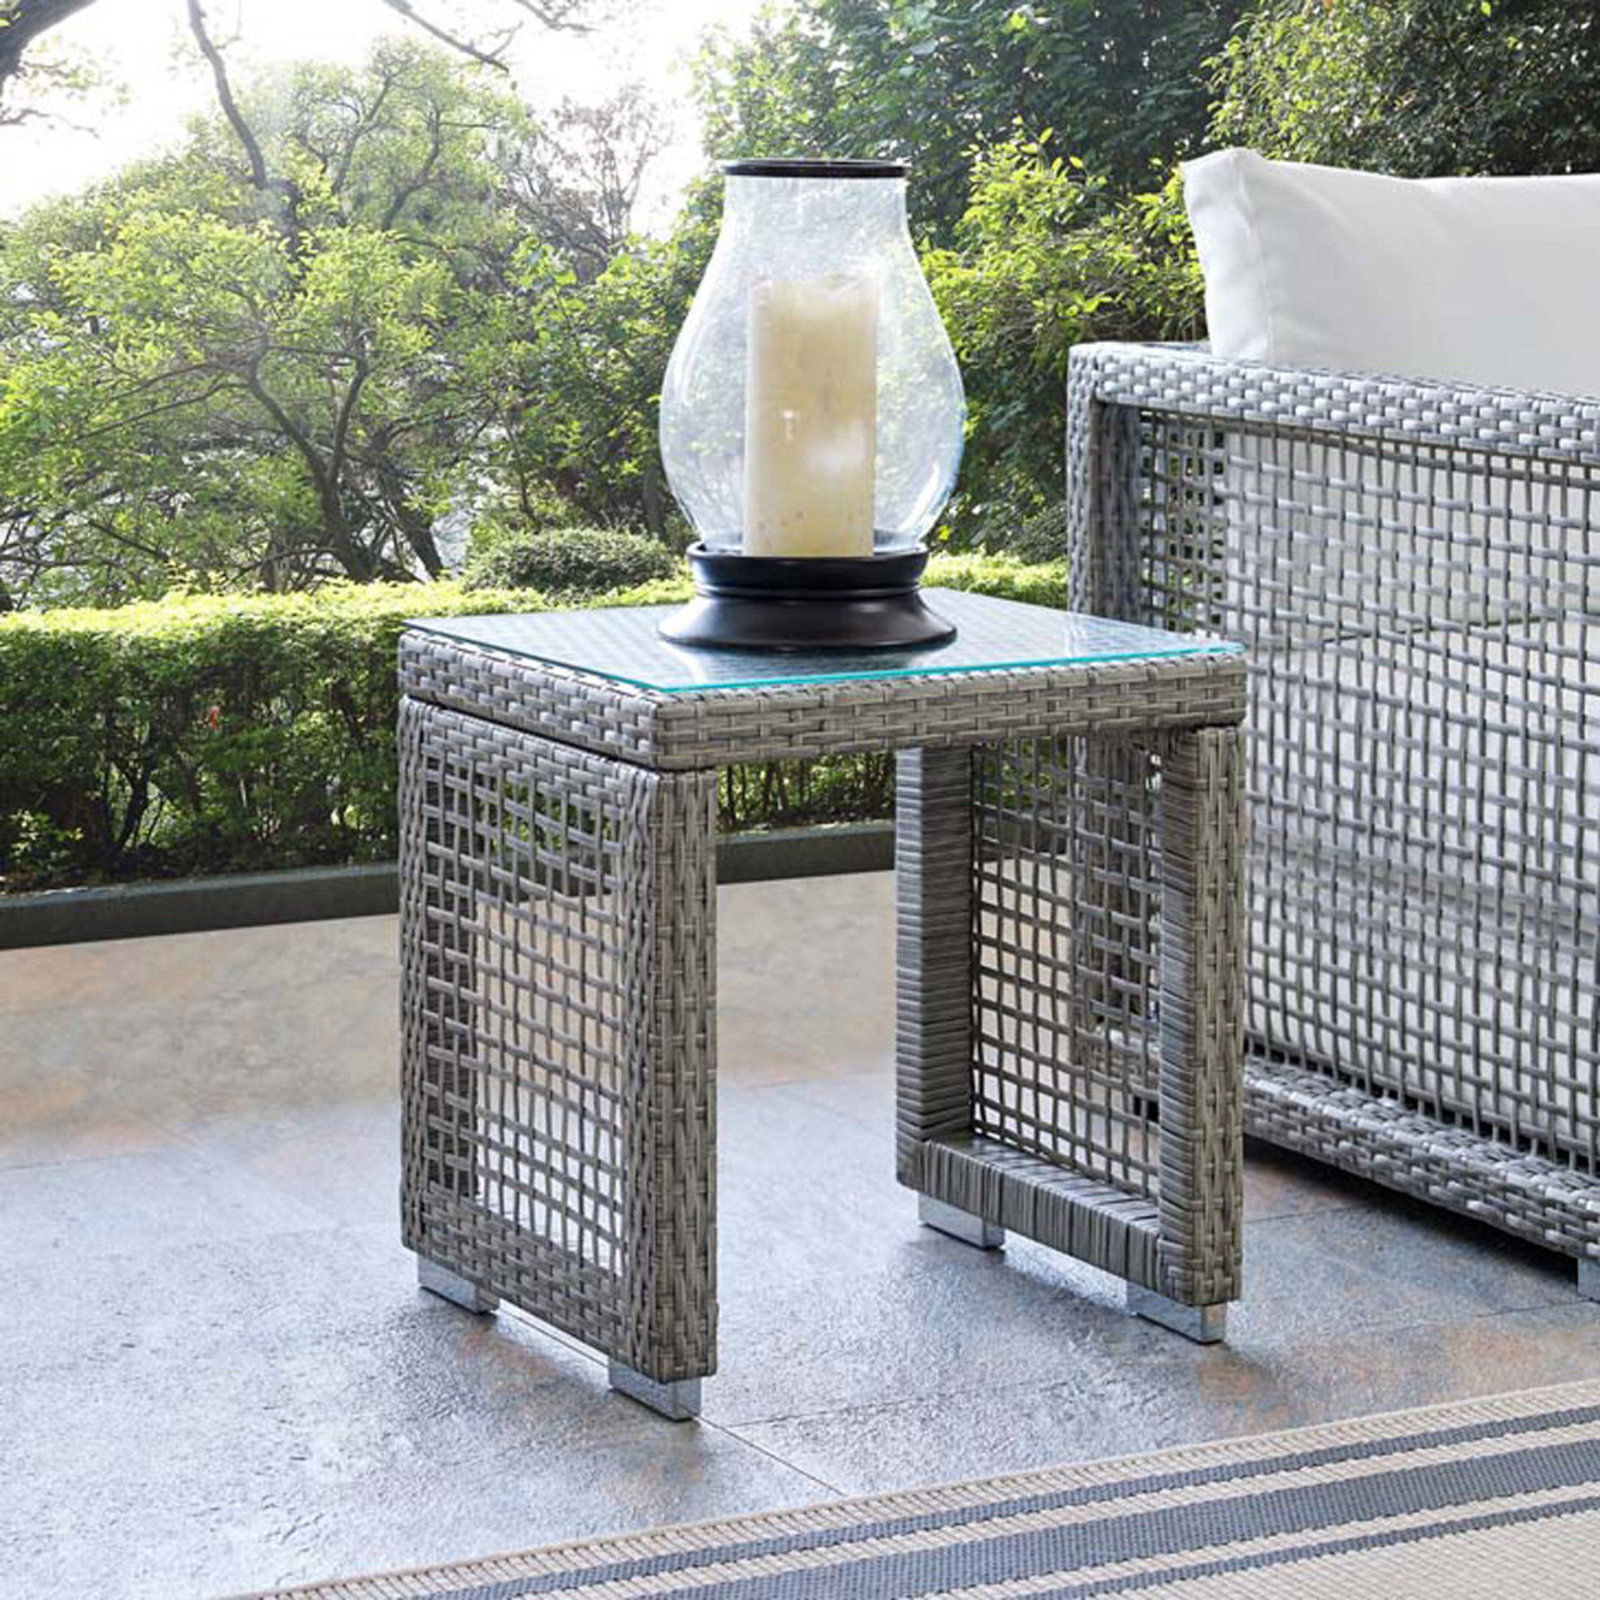 modern open weave outdoor side table shades light gray rectangular trestle round mats inexpensive legs imitation furniture antique blue end chairs west elm telescoping lamp yellow